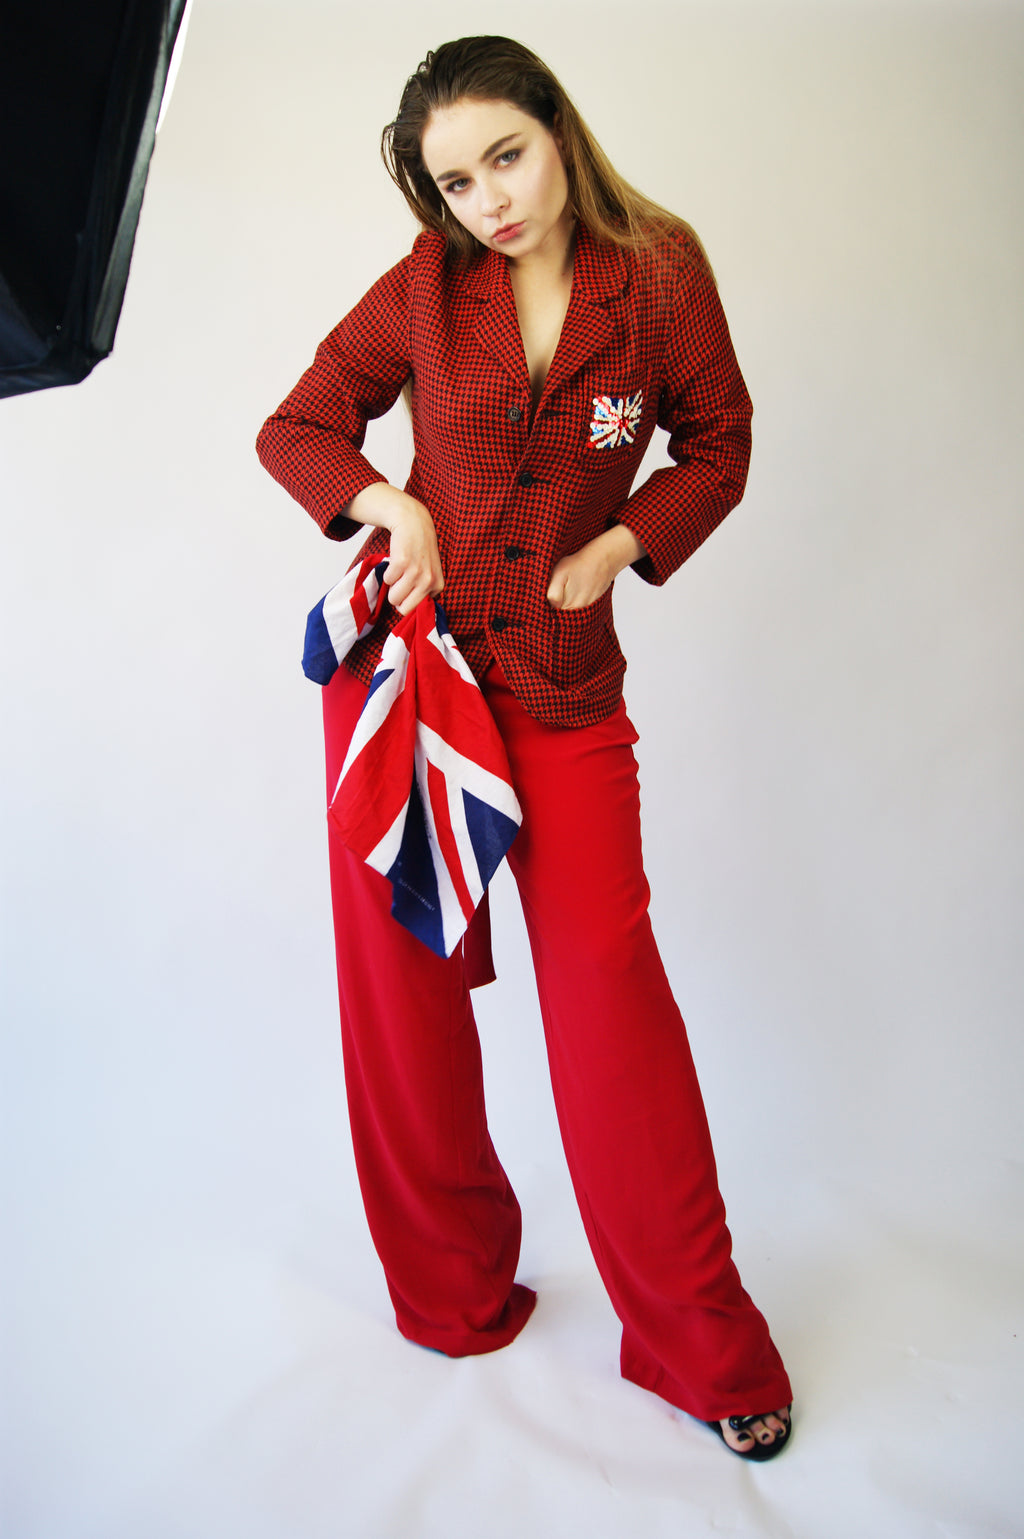 UK Flag Tartan Jacket Similar To Vivienne Westwood Aesthetics - ULTRA-CAT